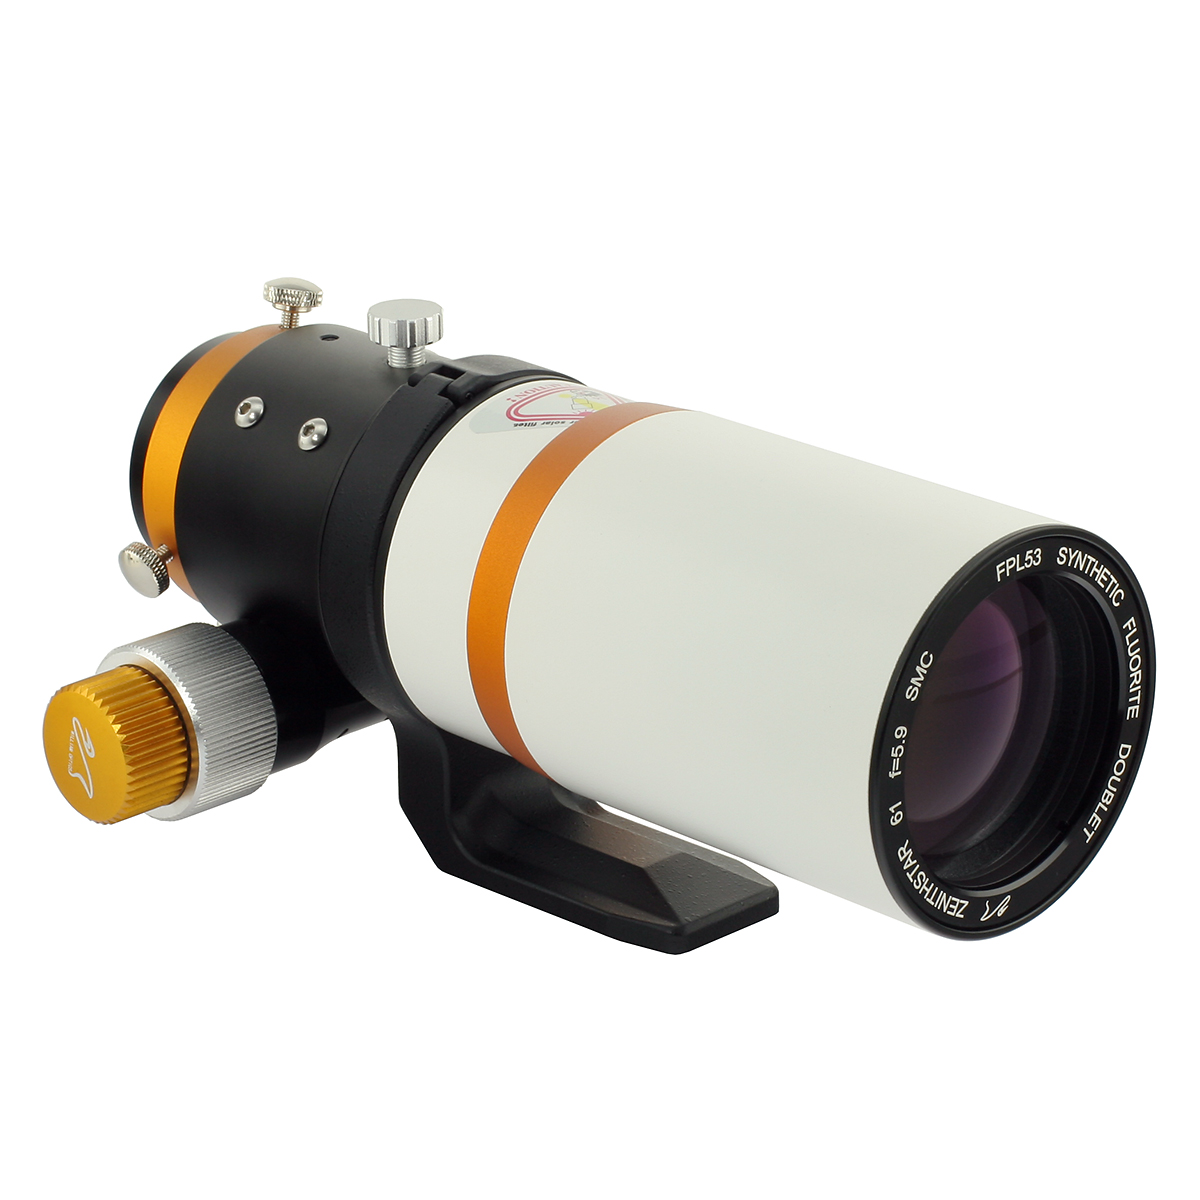 William Optics Zenithstar 61 APO (2018 Model)